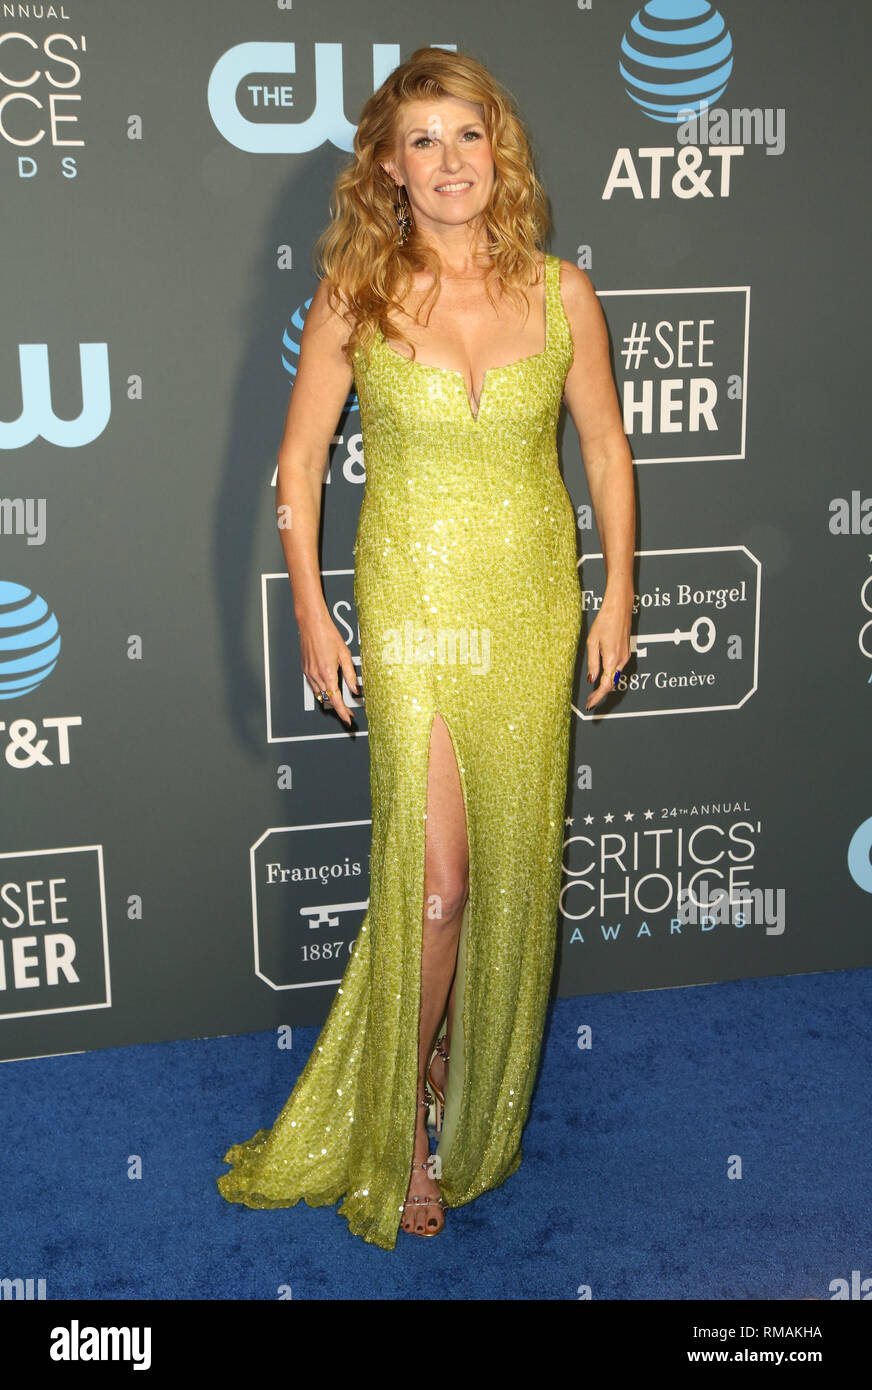 Celebrities attend 24th Annual Critic's Choice Awards